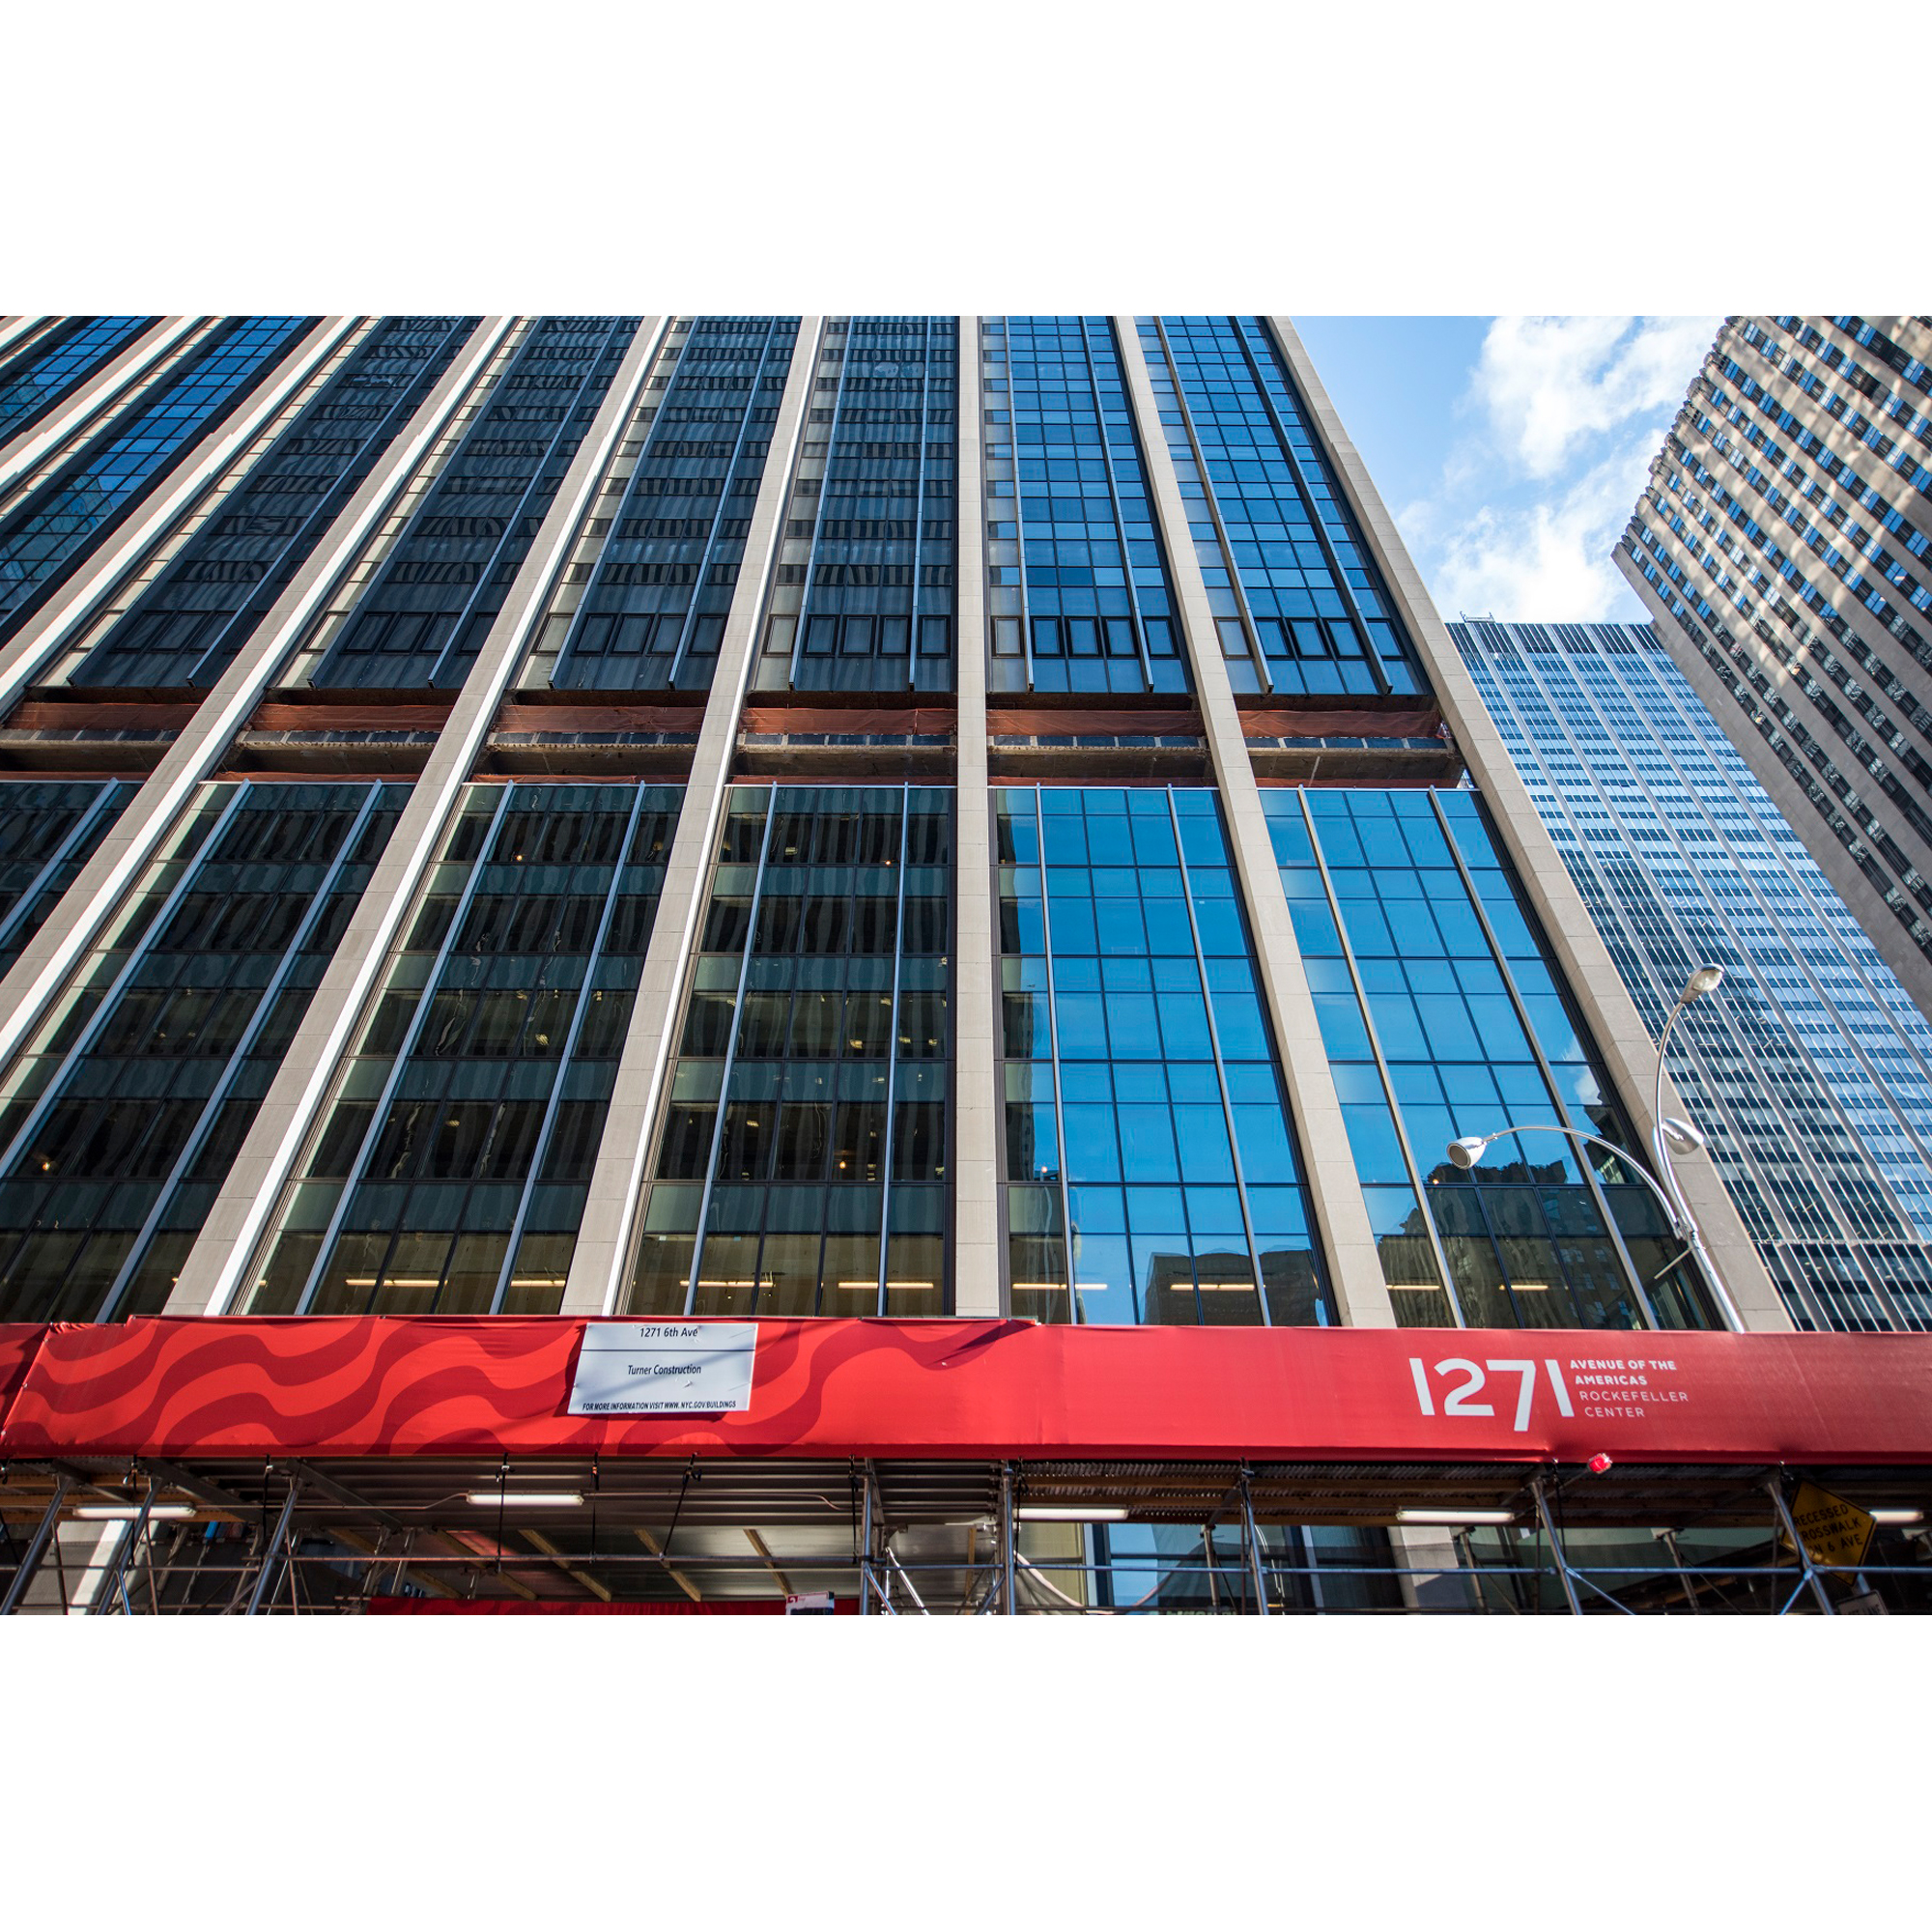 1271 Avenue of the Americas